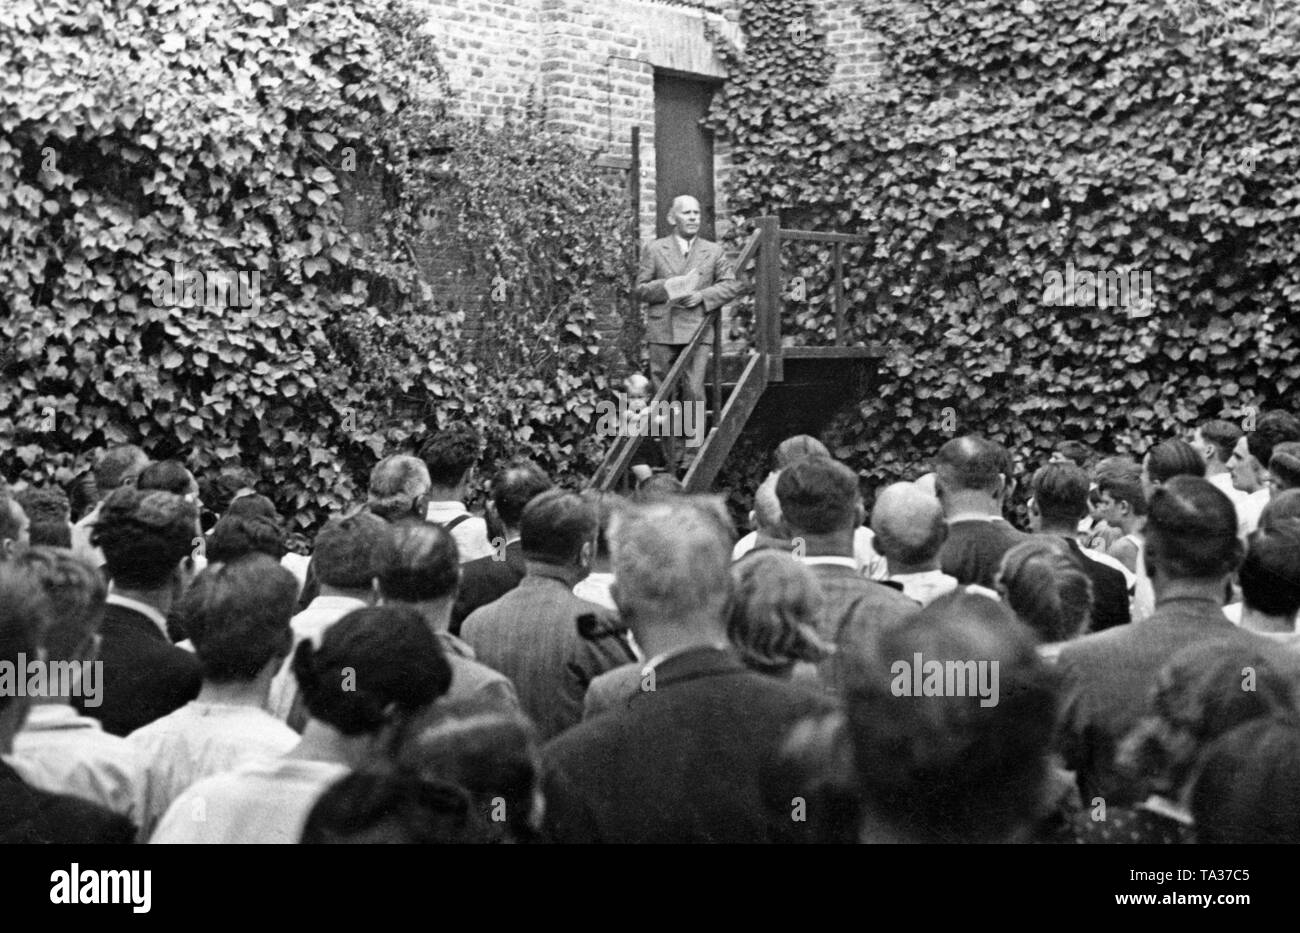 Photo of a member of the German Embassy giving a speech to a group of Germans in the Avenida de la Libertad in Madrid after the outbreak of the Spanish Civil War in the summer of 1936. - Stock Image